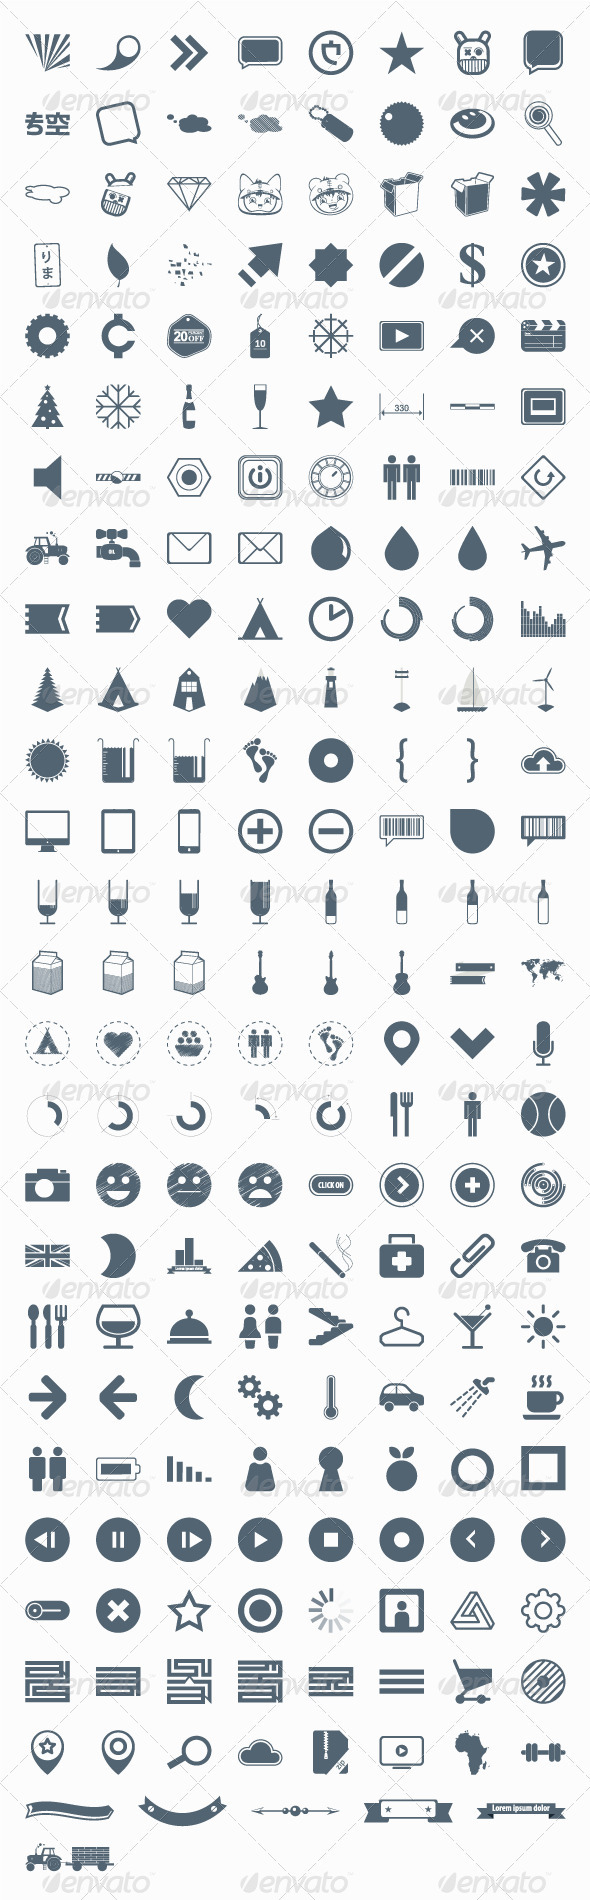 GraphicRiver 206 vector icons signs symbols and pictograms 2397808